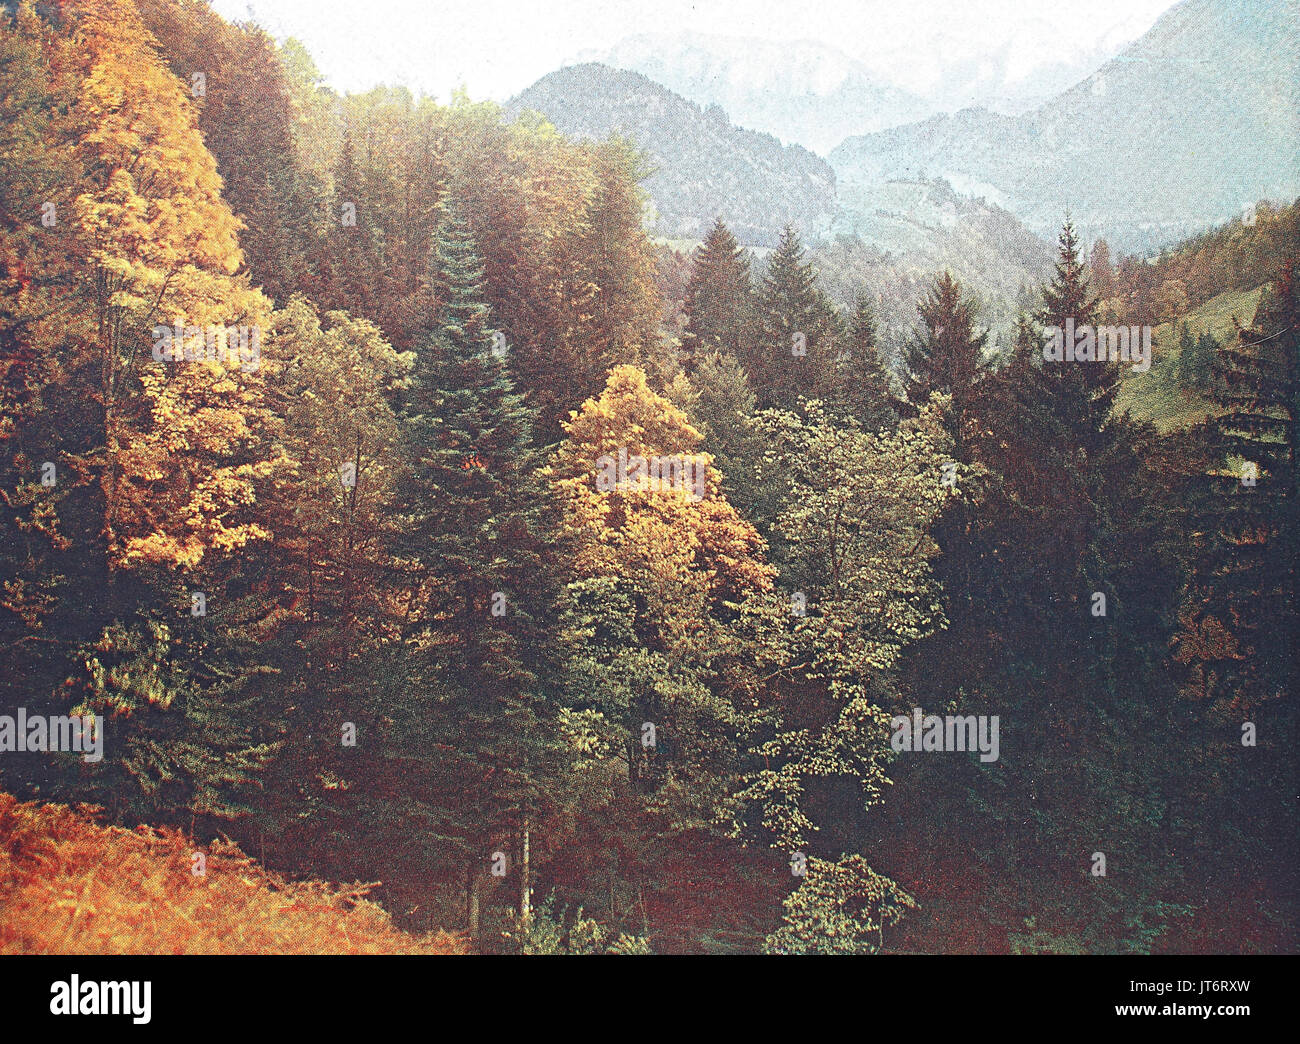 Historical photo of the alps region Tatzelwurm, Bavaria, Germany, Digital improved reproduction of an image published between 1880 - 1885 - Stock Image